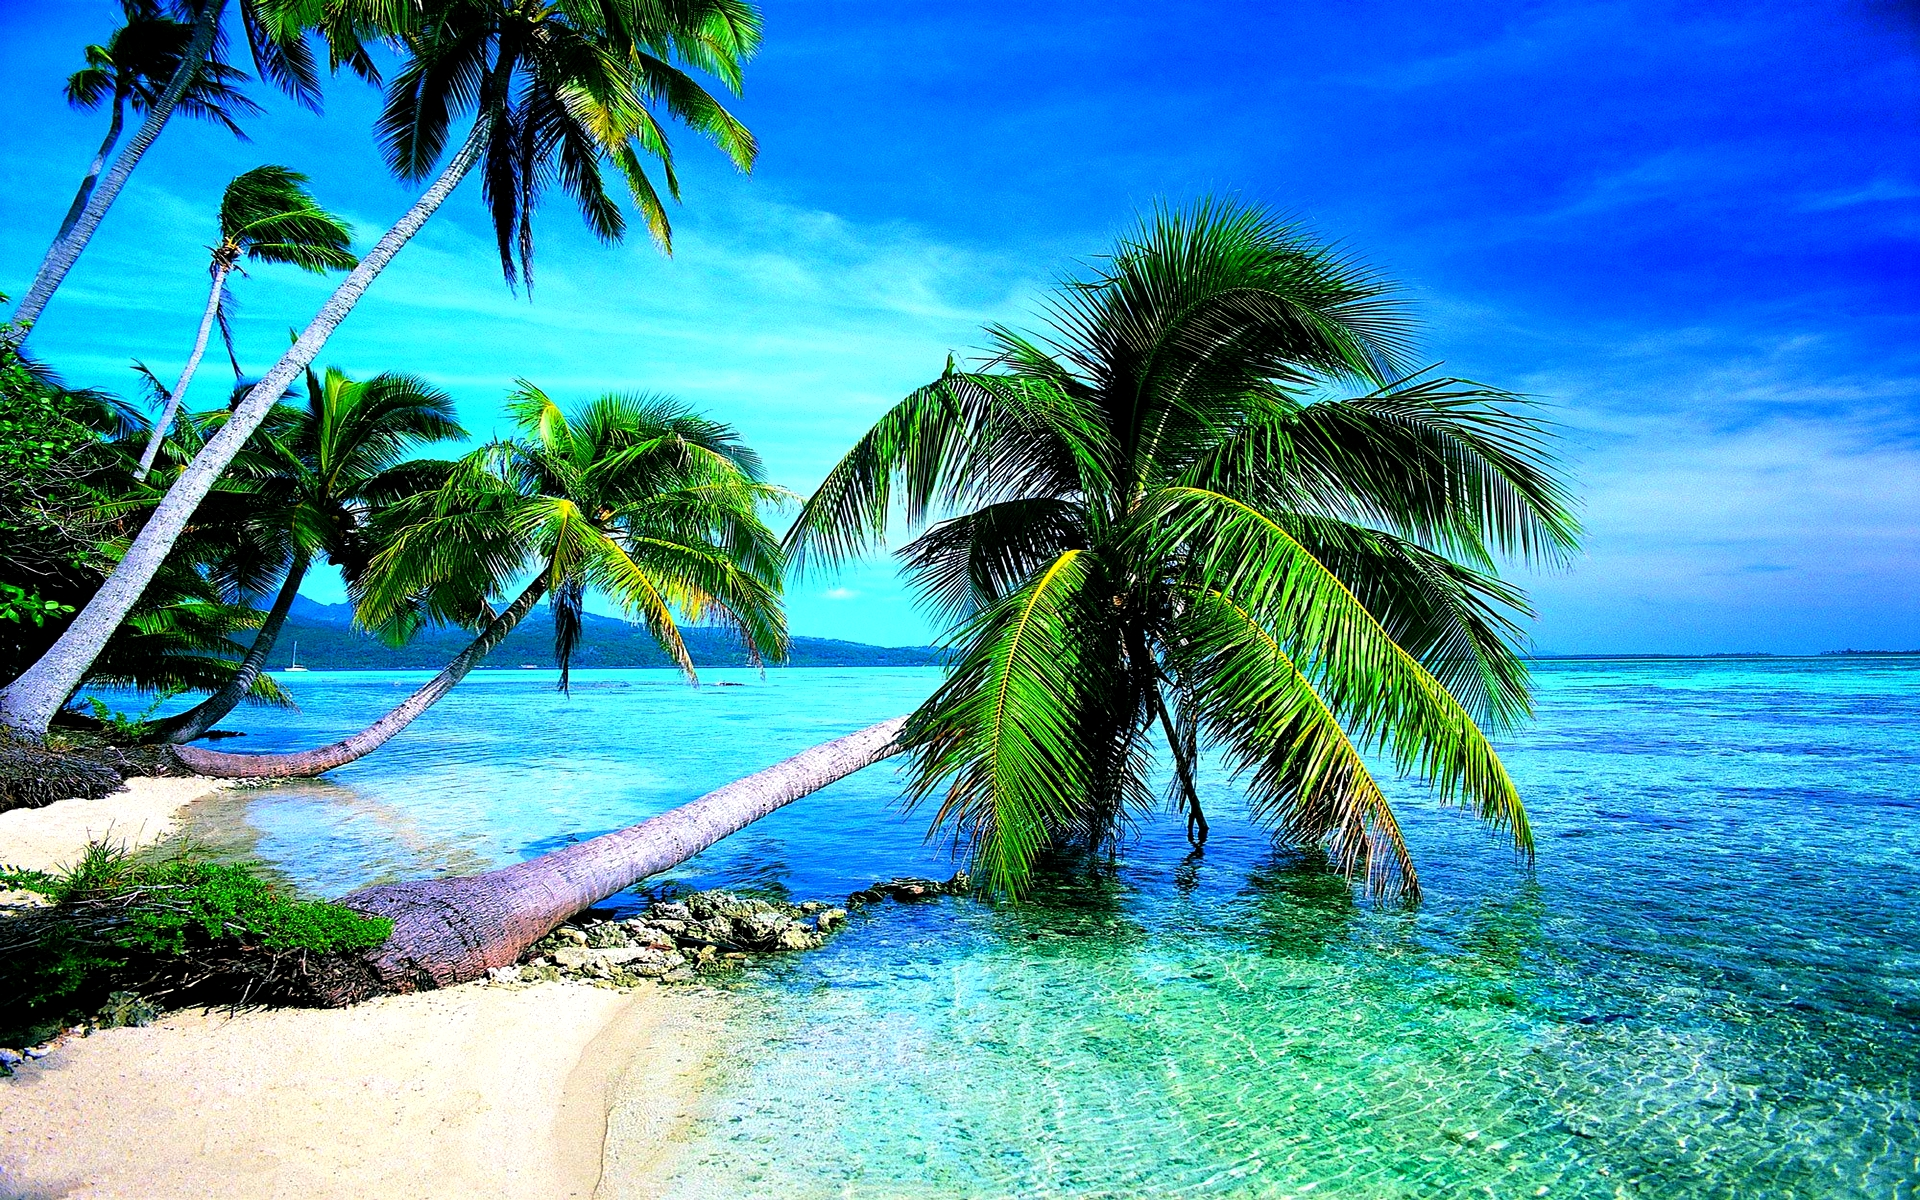 Tropical Beach Desktop Backgrounds Tropical beach 1920x1200